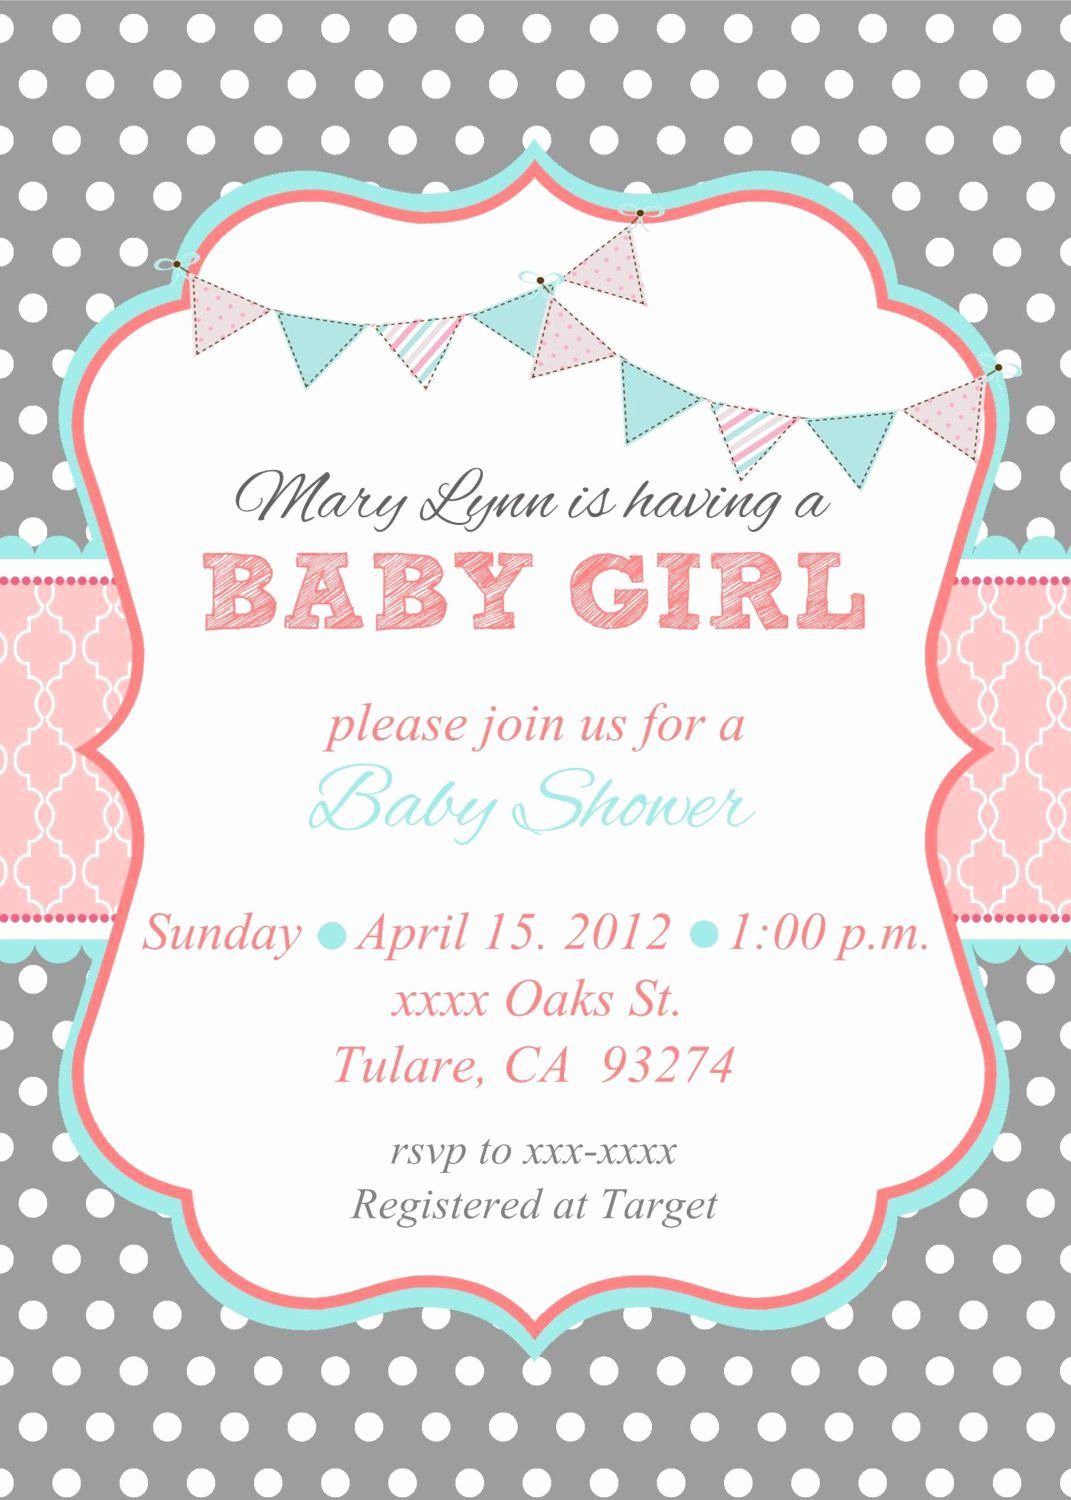 Template for Baby Shower Invitation Unique Loca Date Time Line About Diaper Raffle & Spa Prize